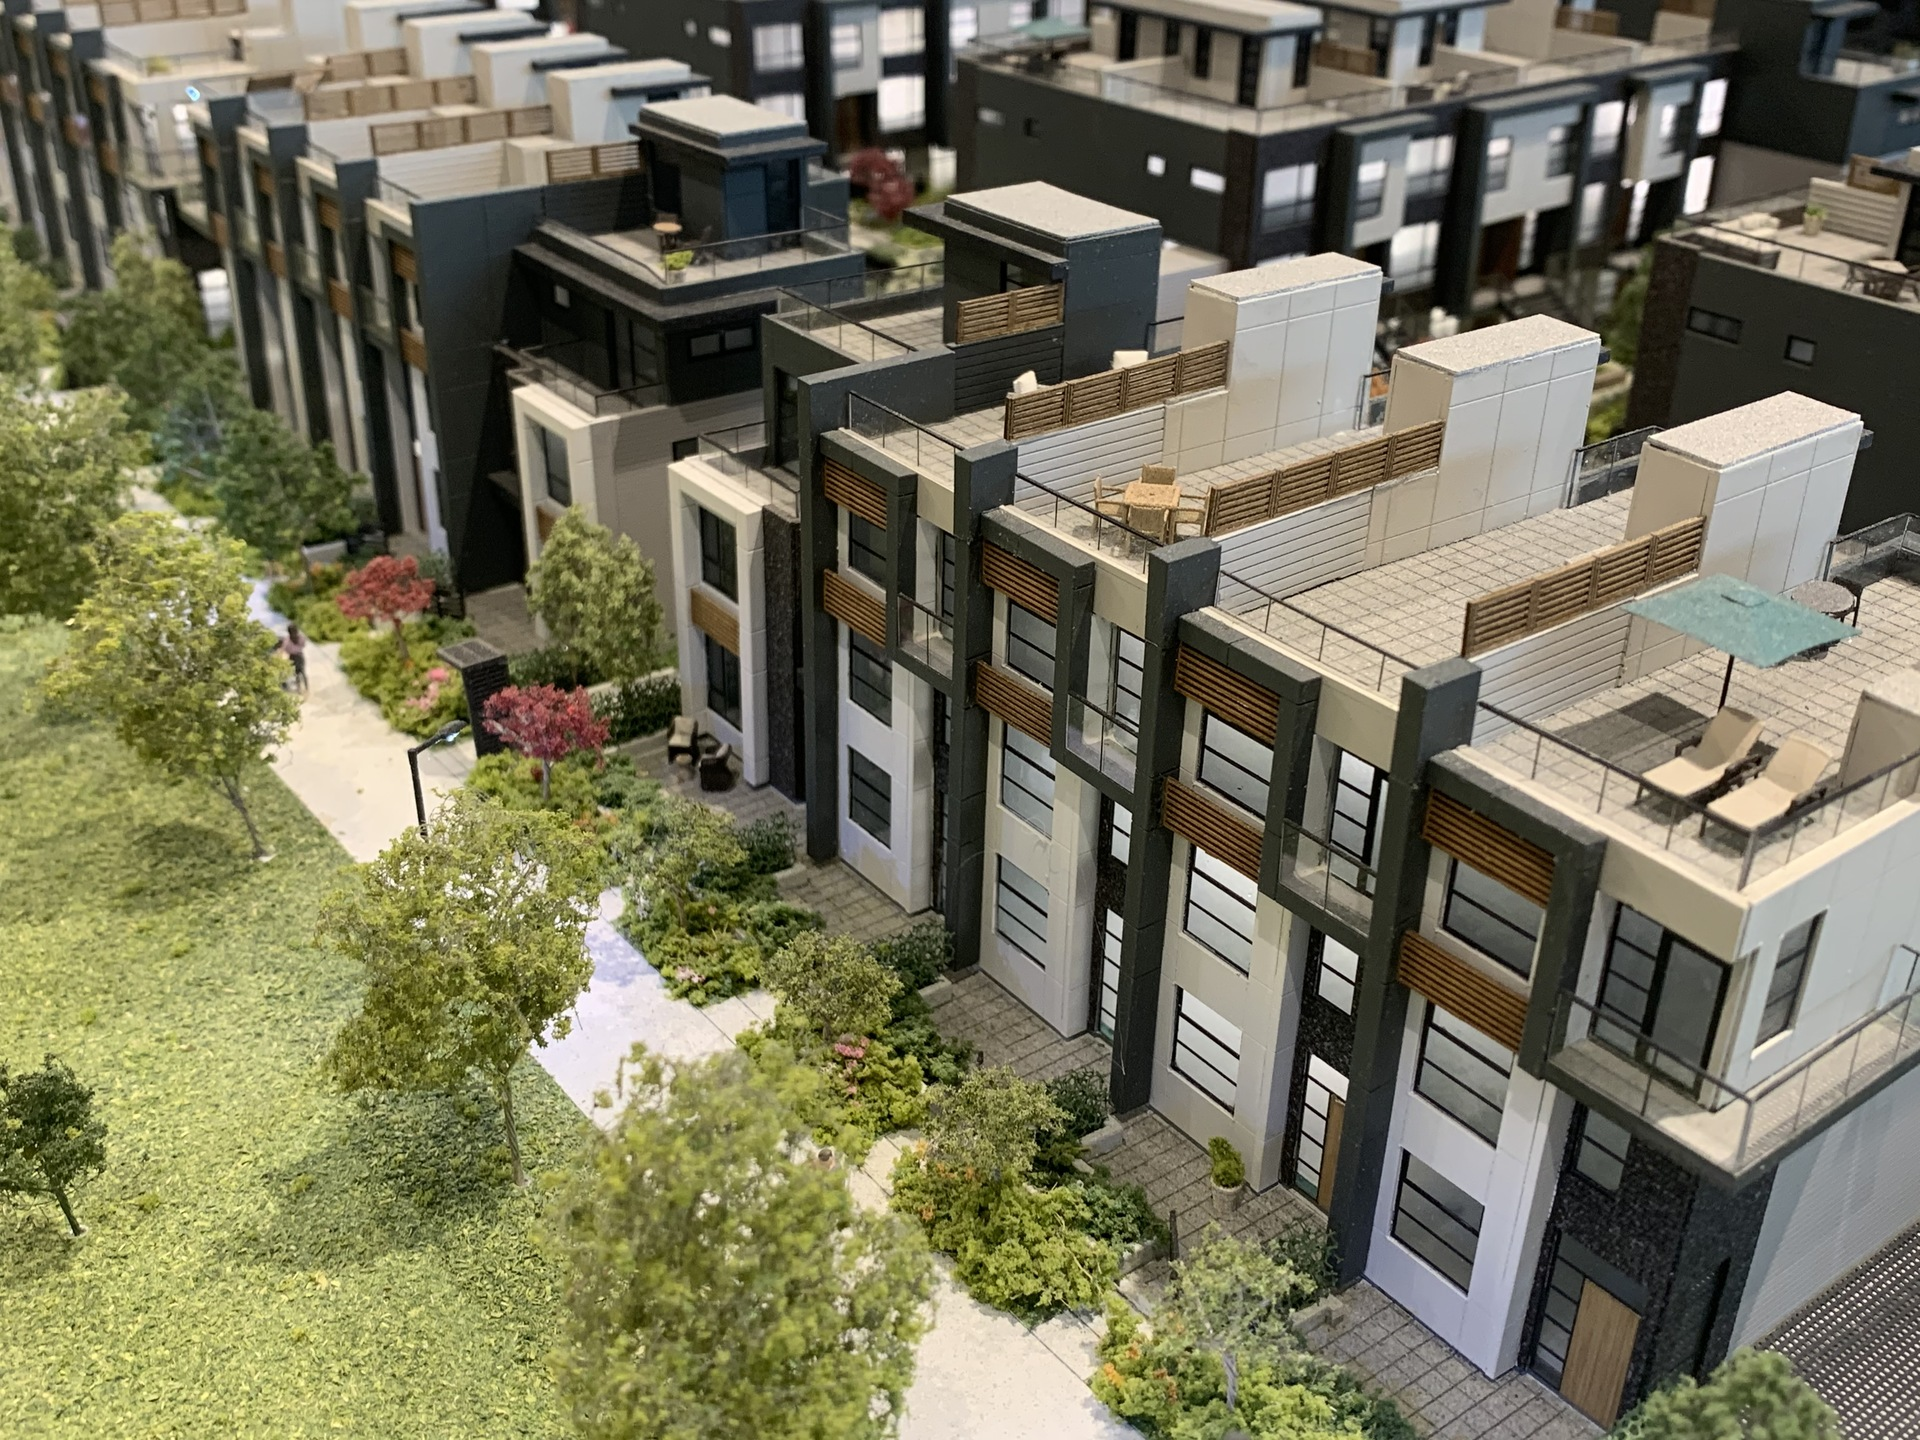 Kin - north facade of Parkside townhomes at The Kin Collection (7470 Buller Avenue, Metrotown, Burnaby South)